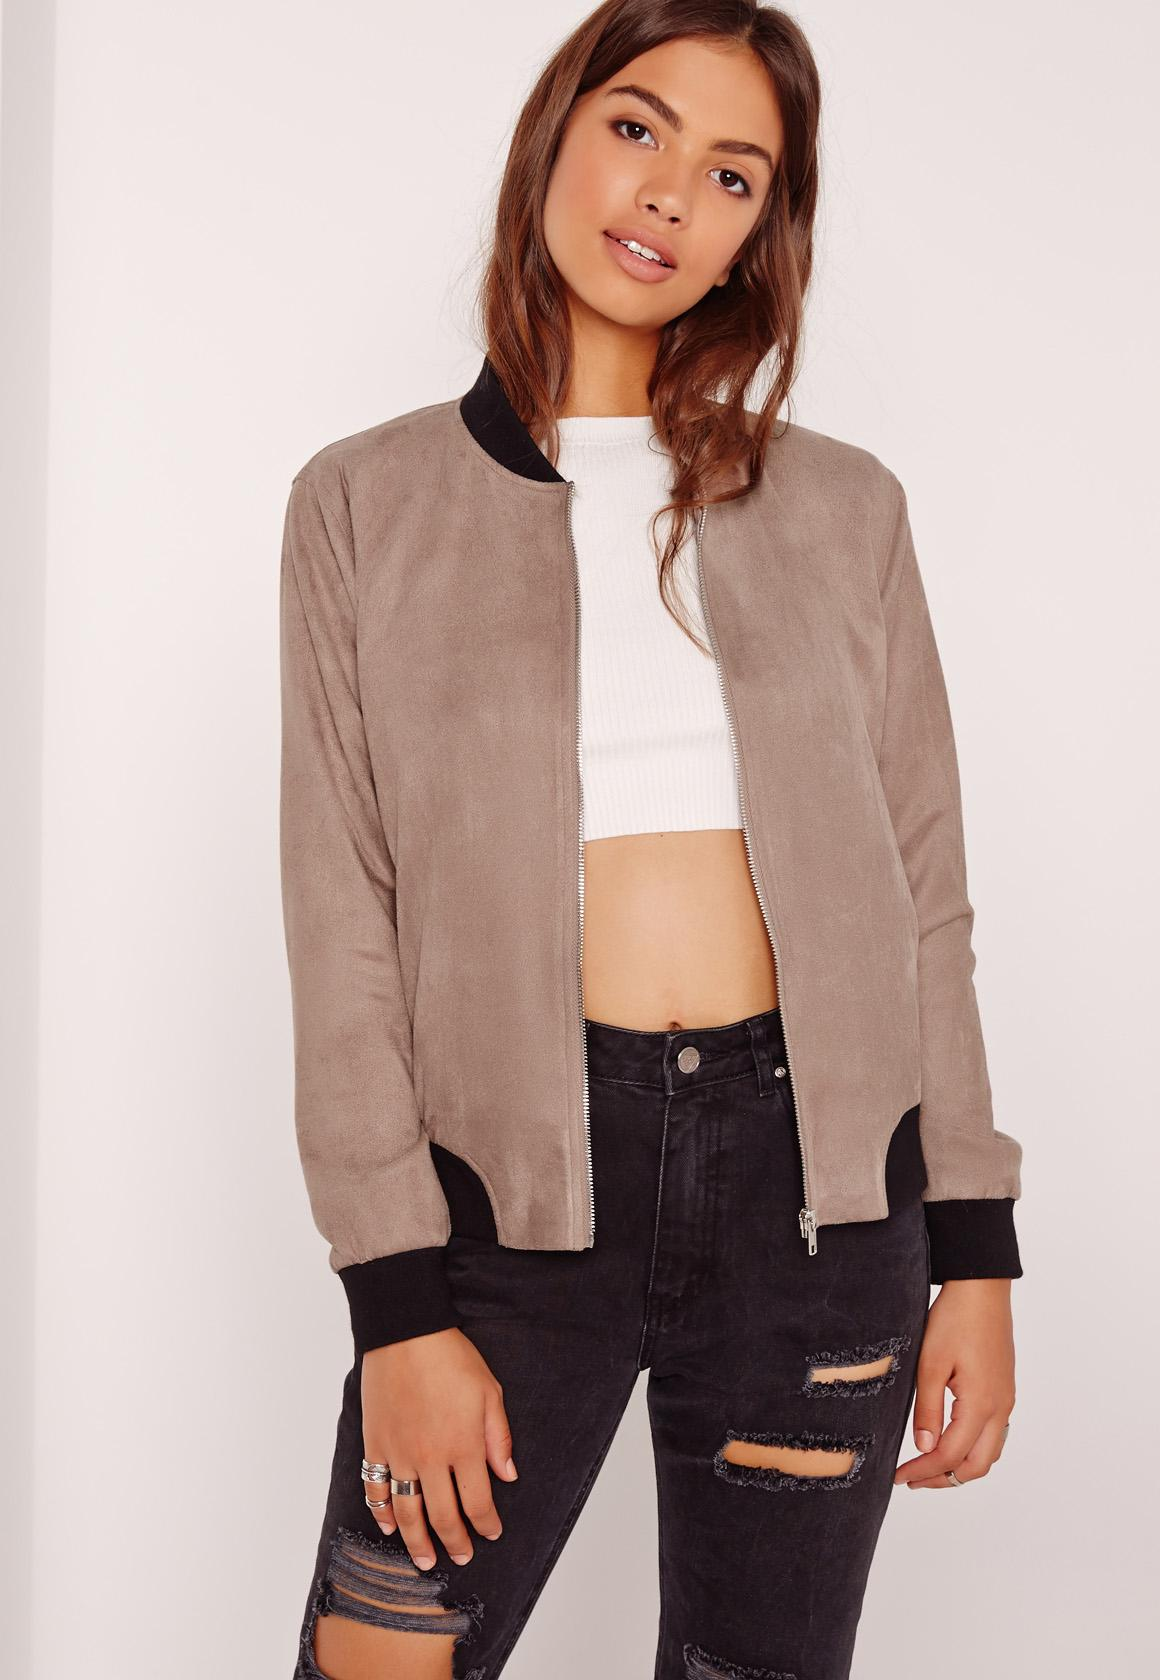 Outlet Great Deals Pictures For Sale Missguided Brown Bomber Jacket Newest Cheap Price Free Shipping Sale How Much Cheap Online hLlskfub3